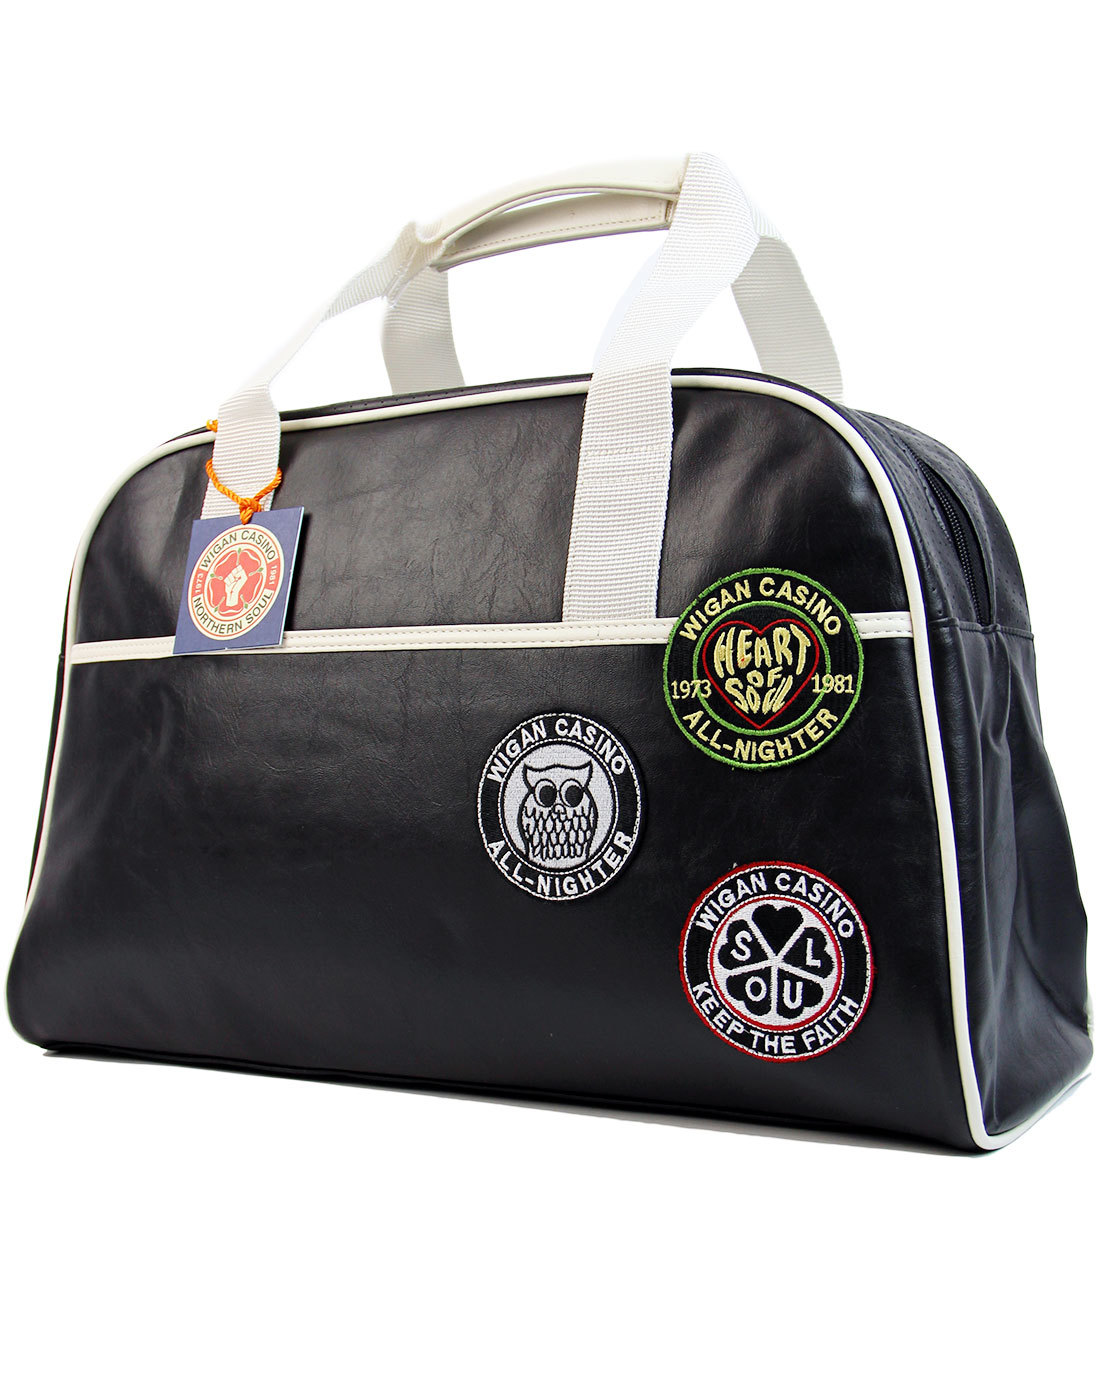 WIGAN CASINO Northern Soul Retro Bowling Bag BLACK